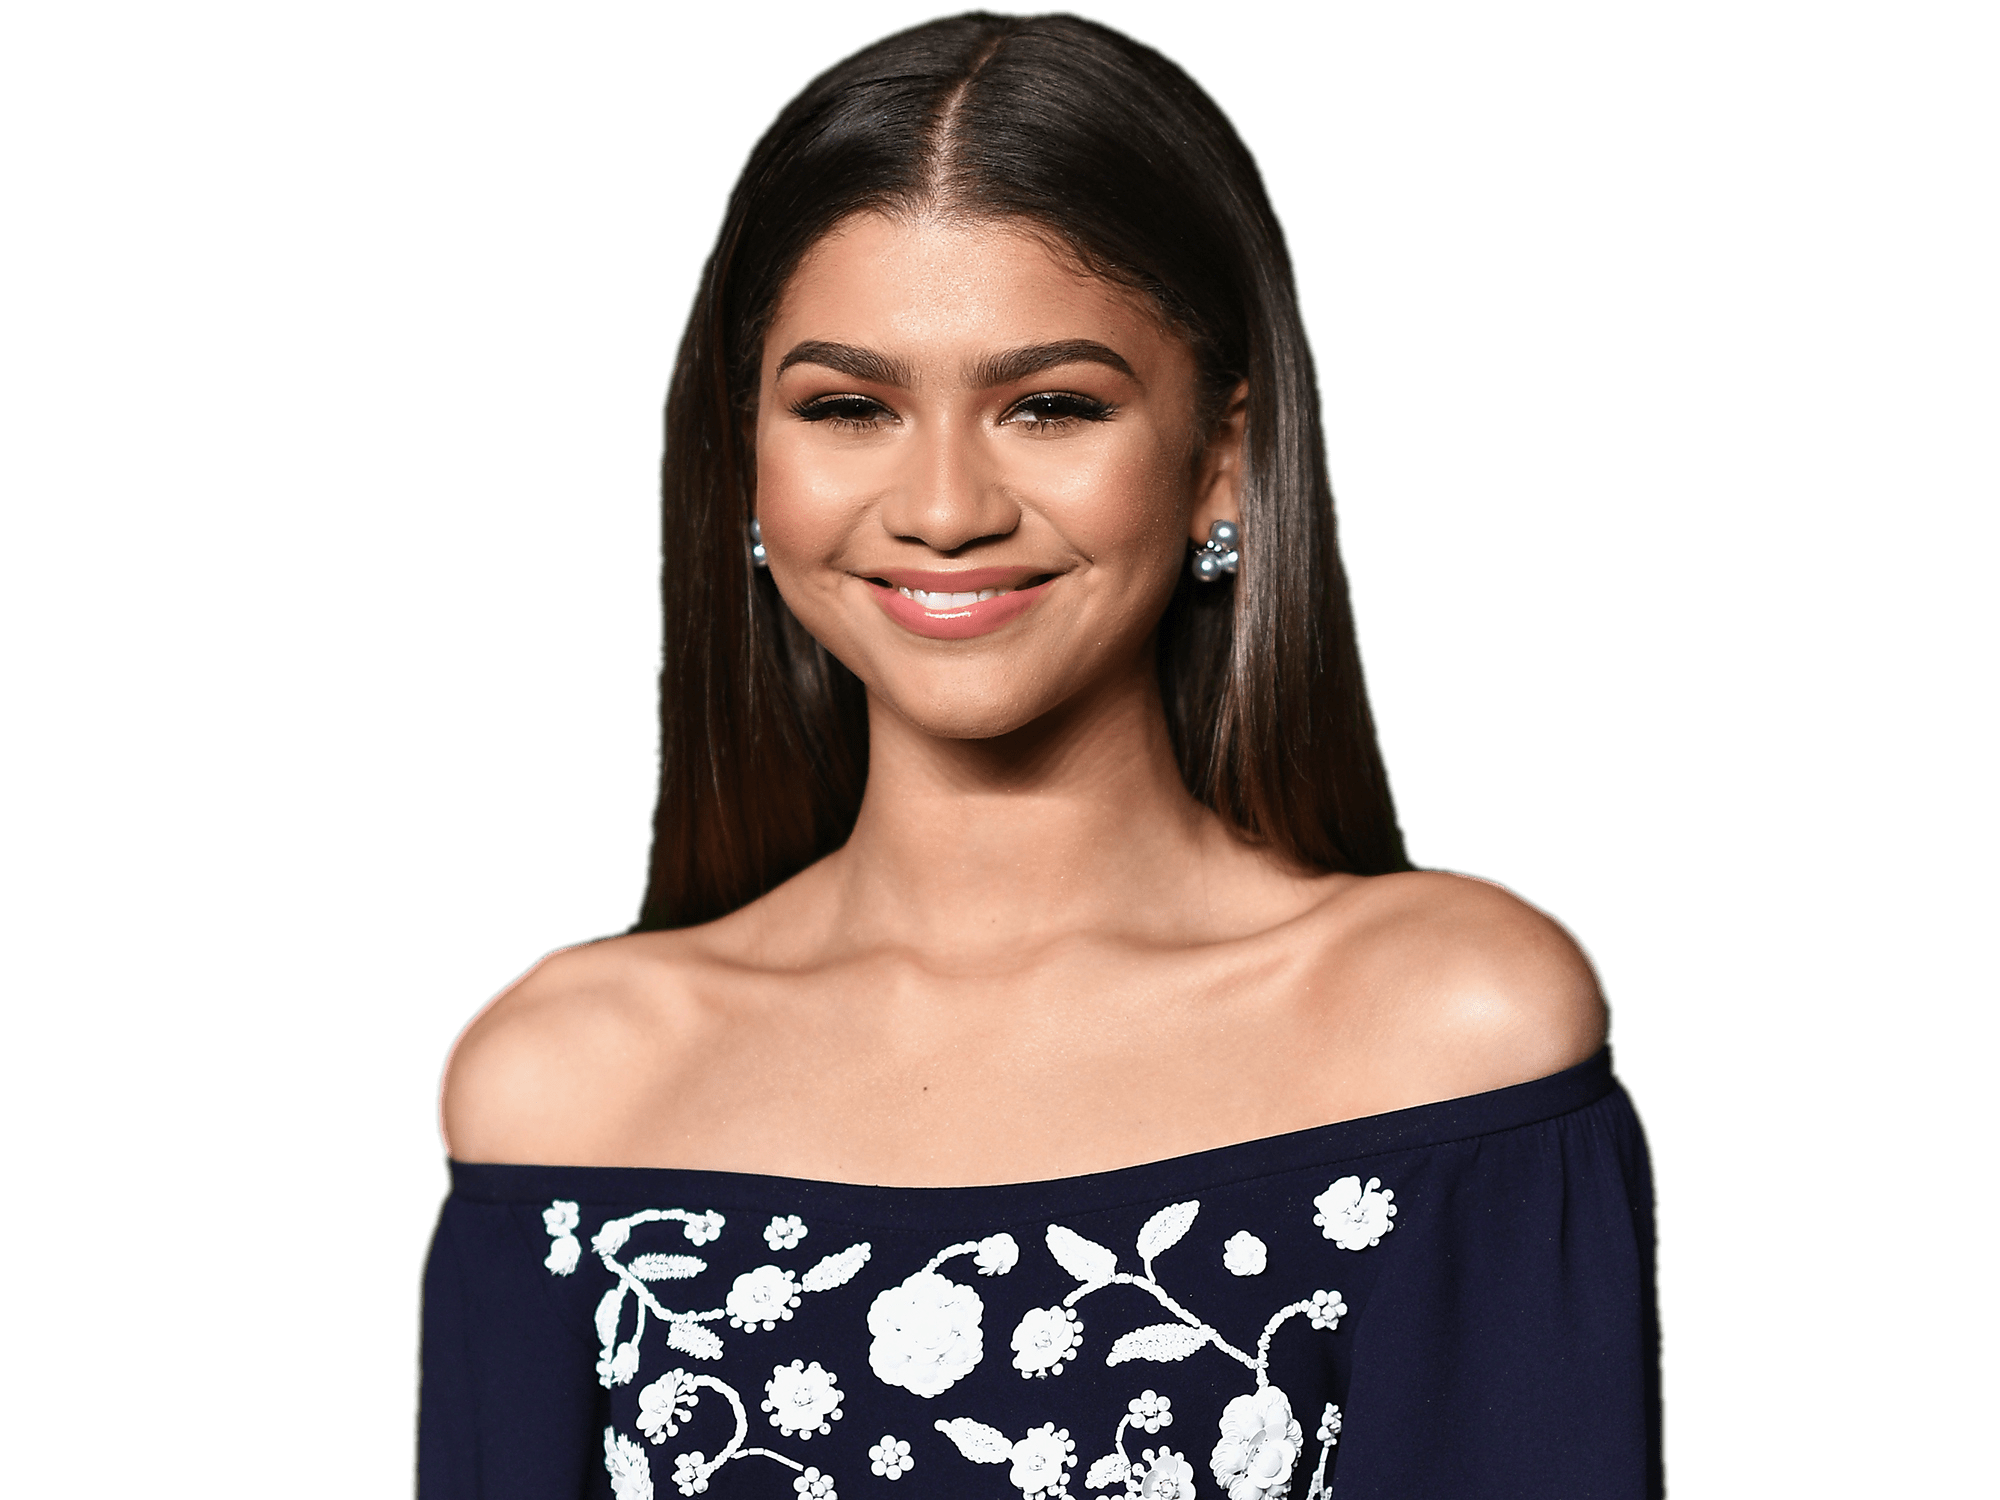 clip freeuse stock Zendaya Shoulders transparent PNG